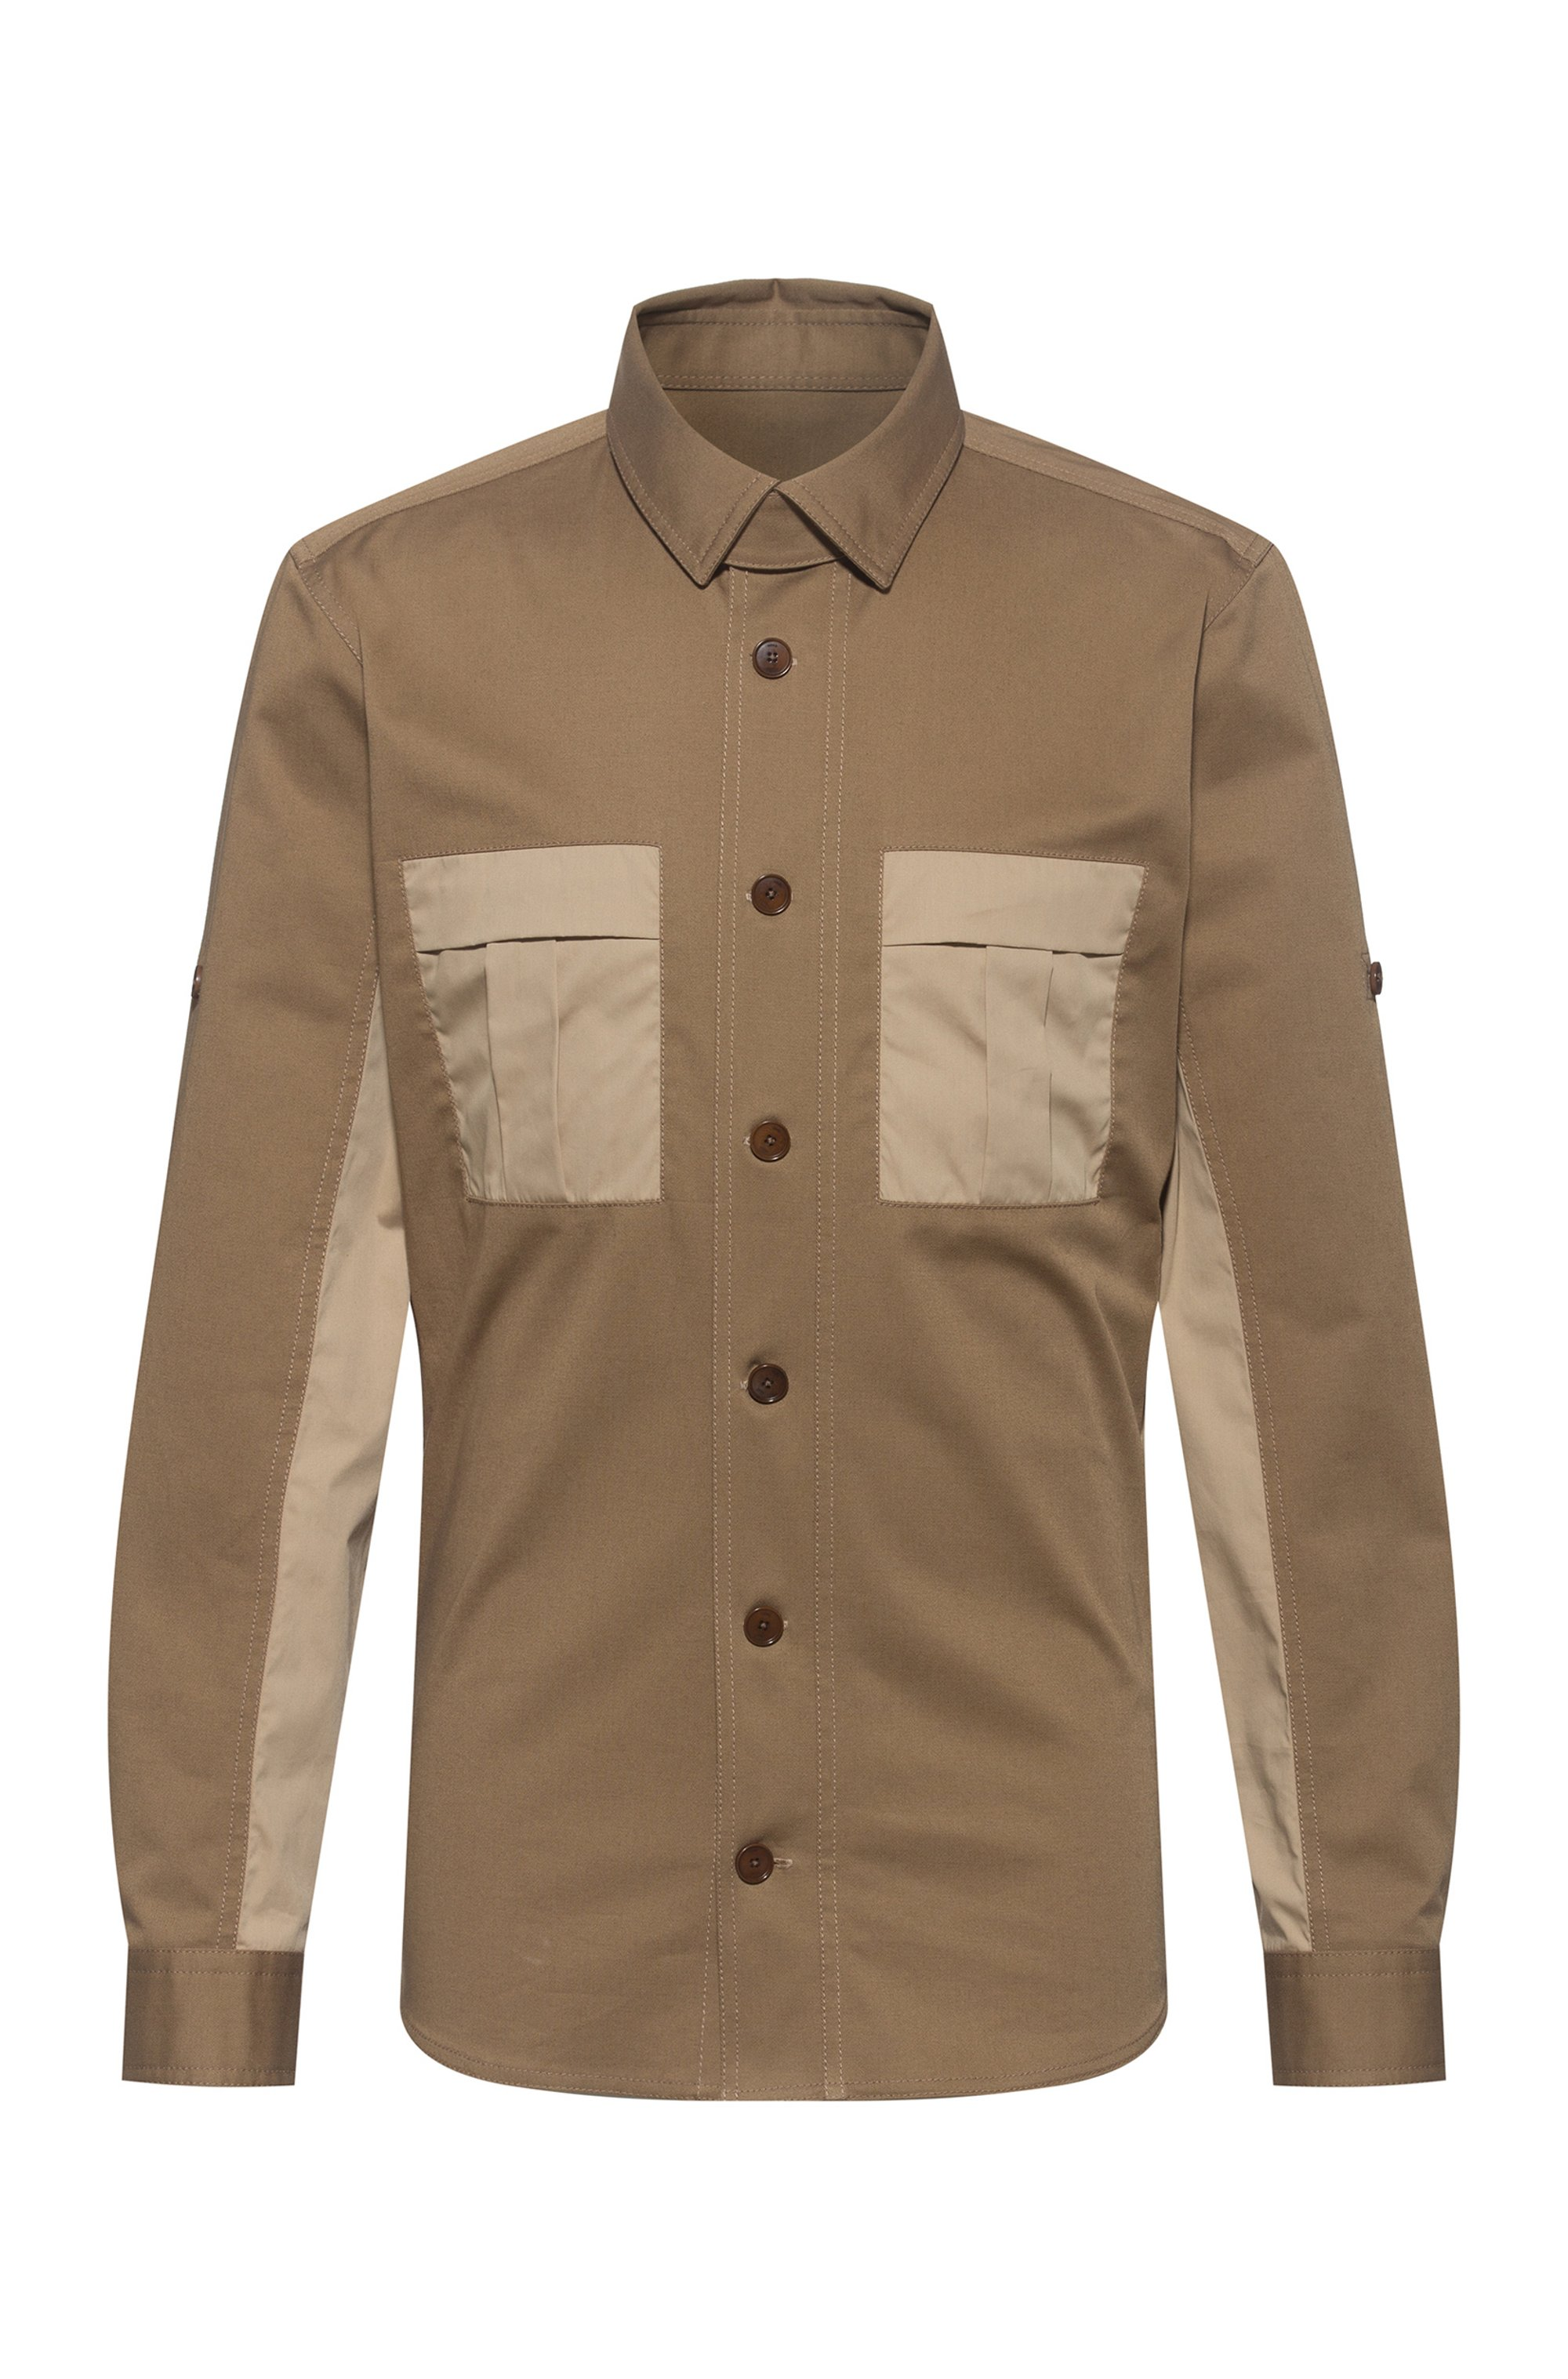 Unisex oversized-fit shirt with contrast chest pockets, Beige